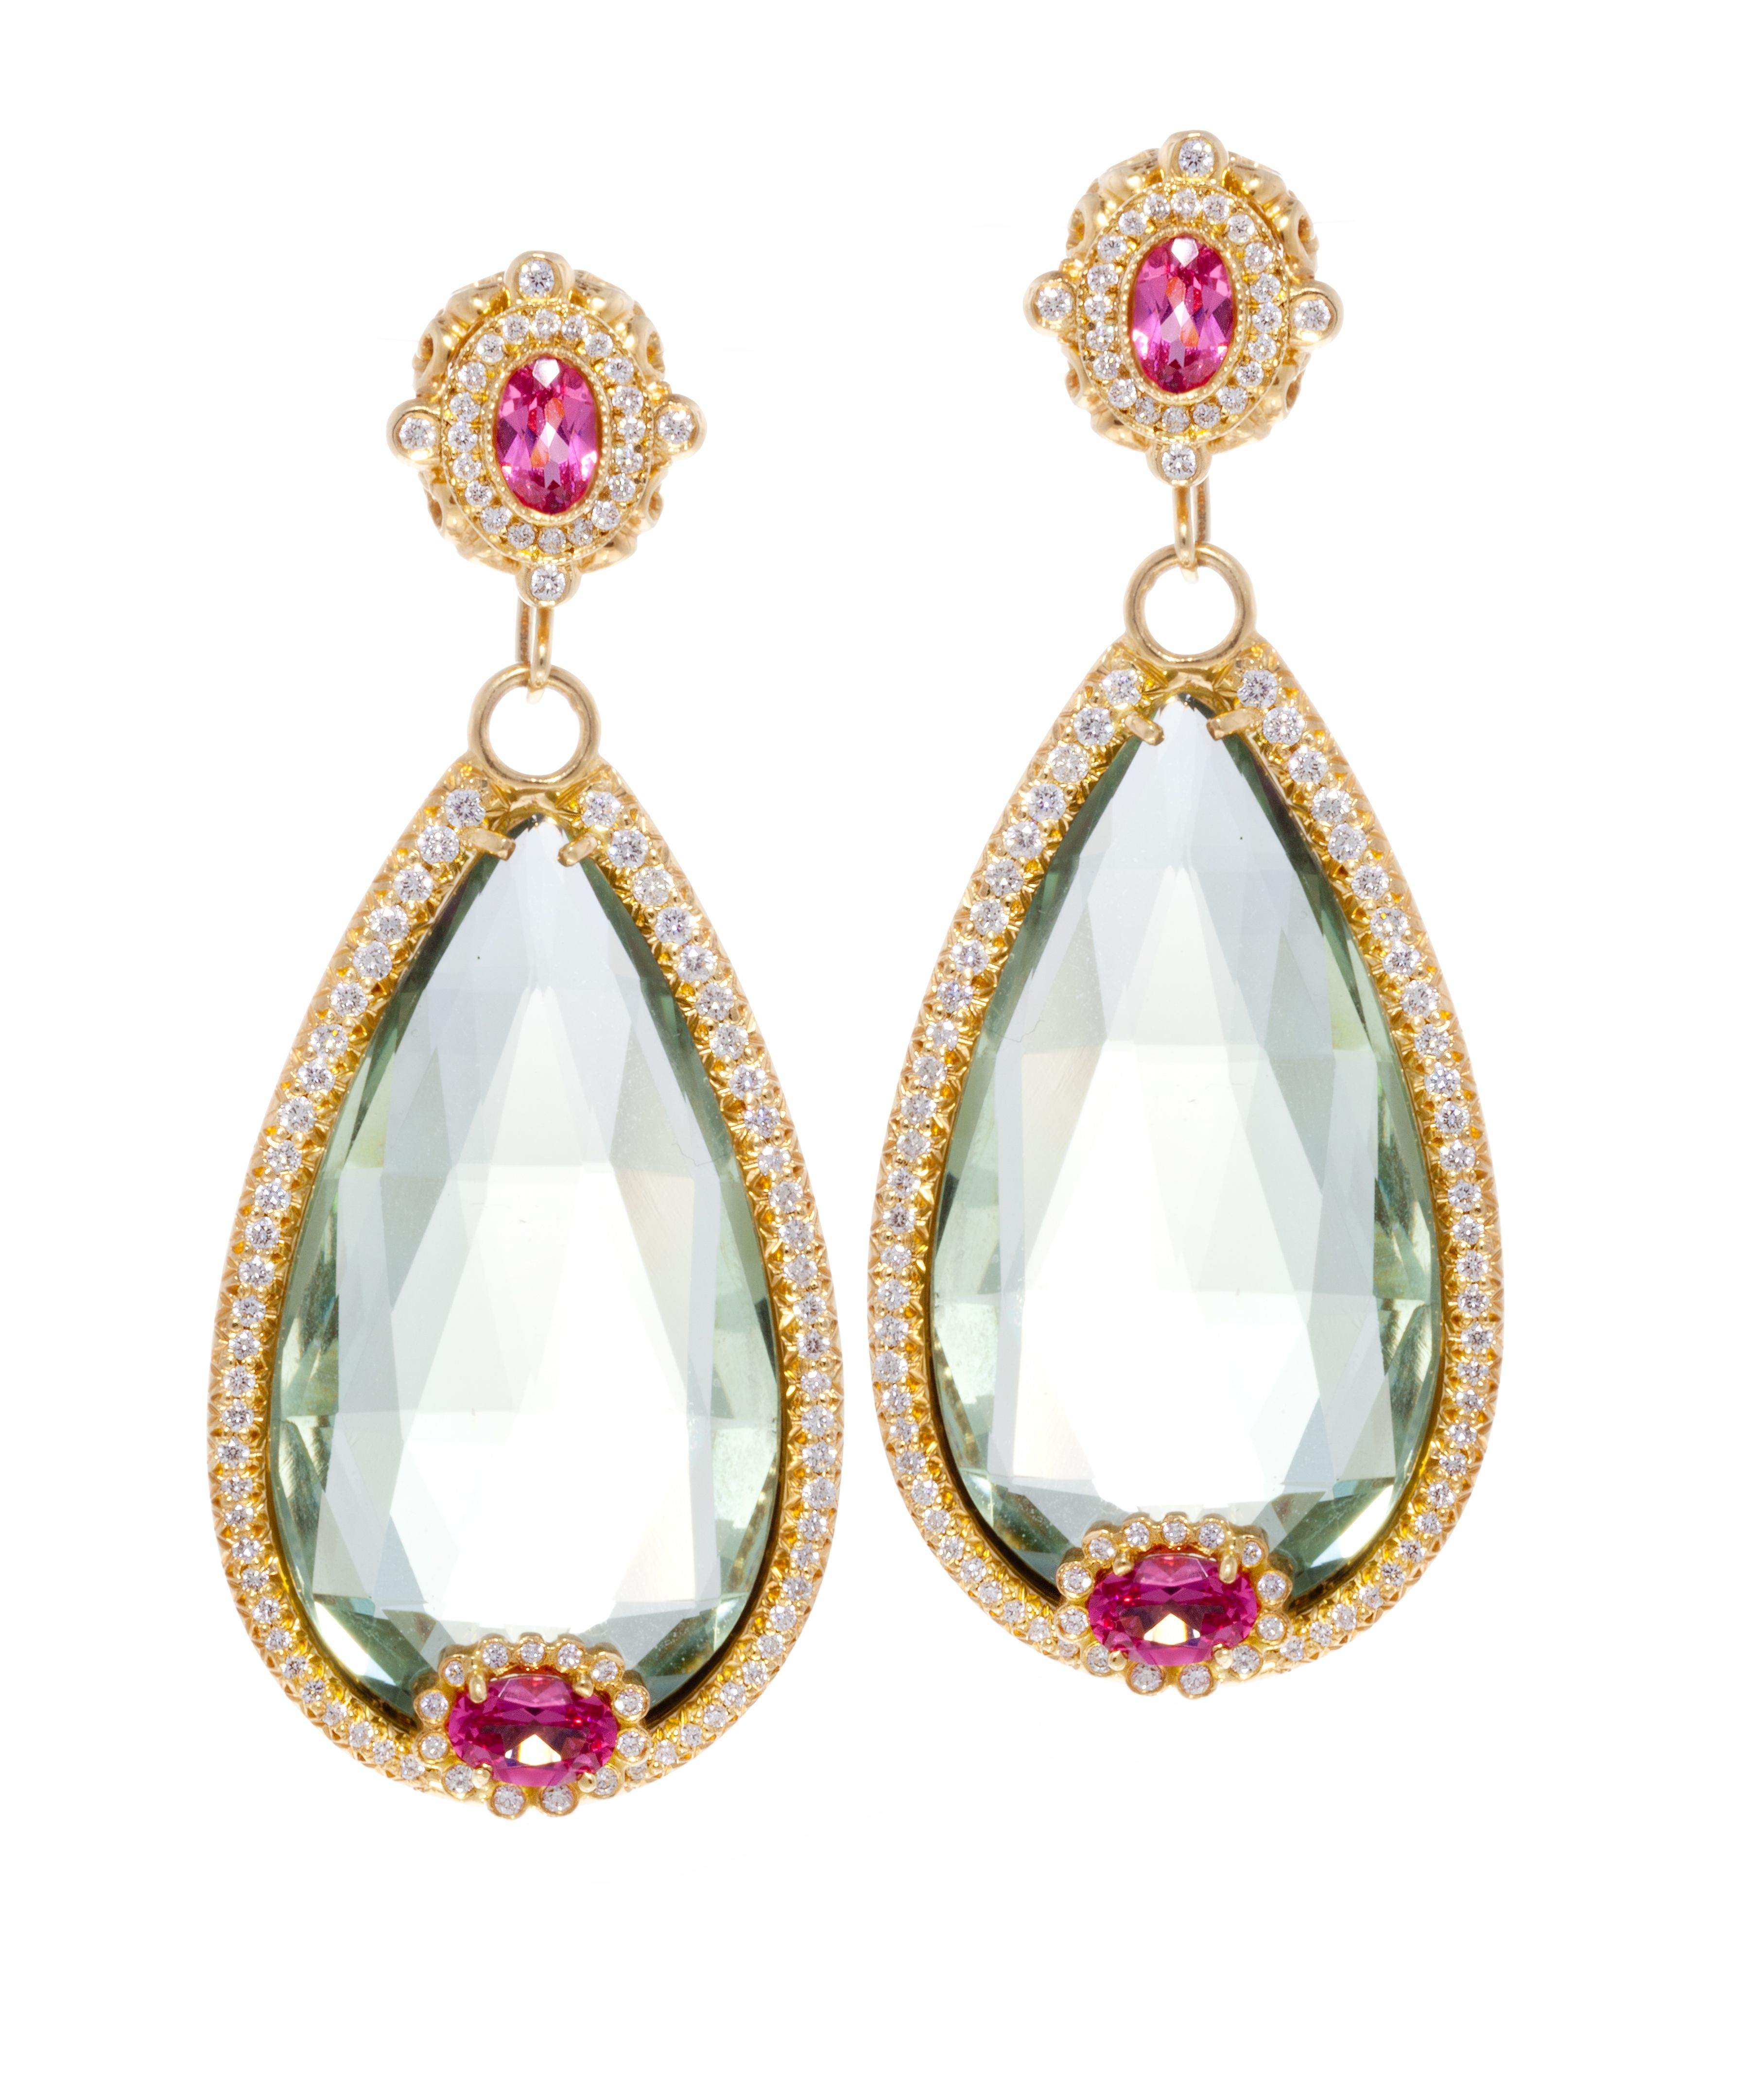 18k Gold And Diamond Green Amethyst With Pink Spinel Earrings By Erica  Courtney®